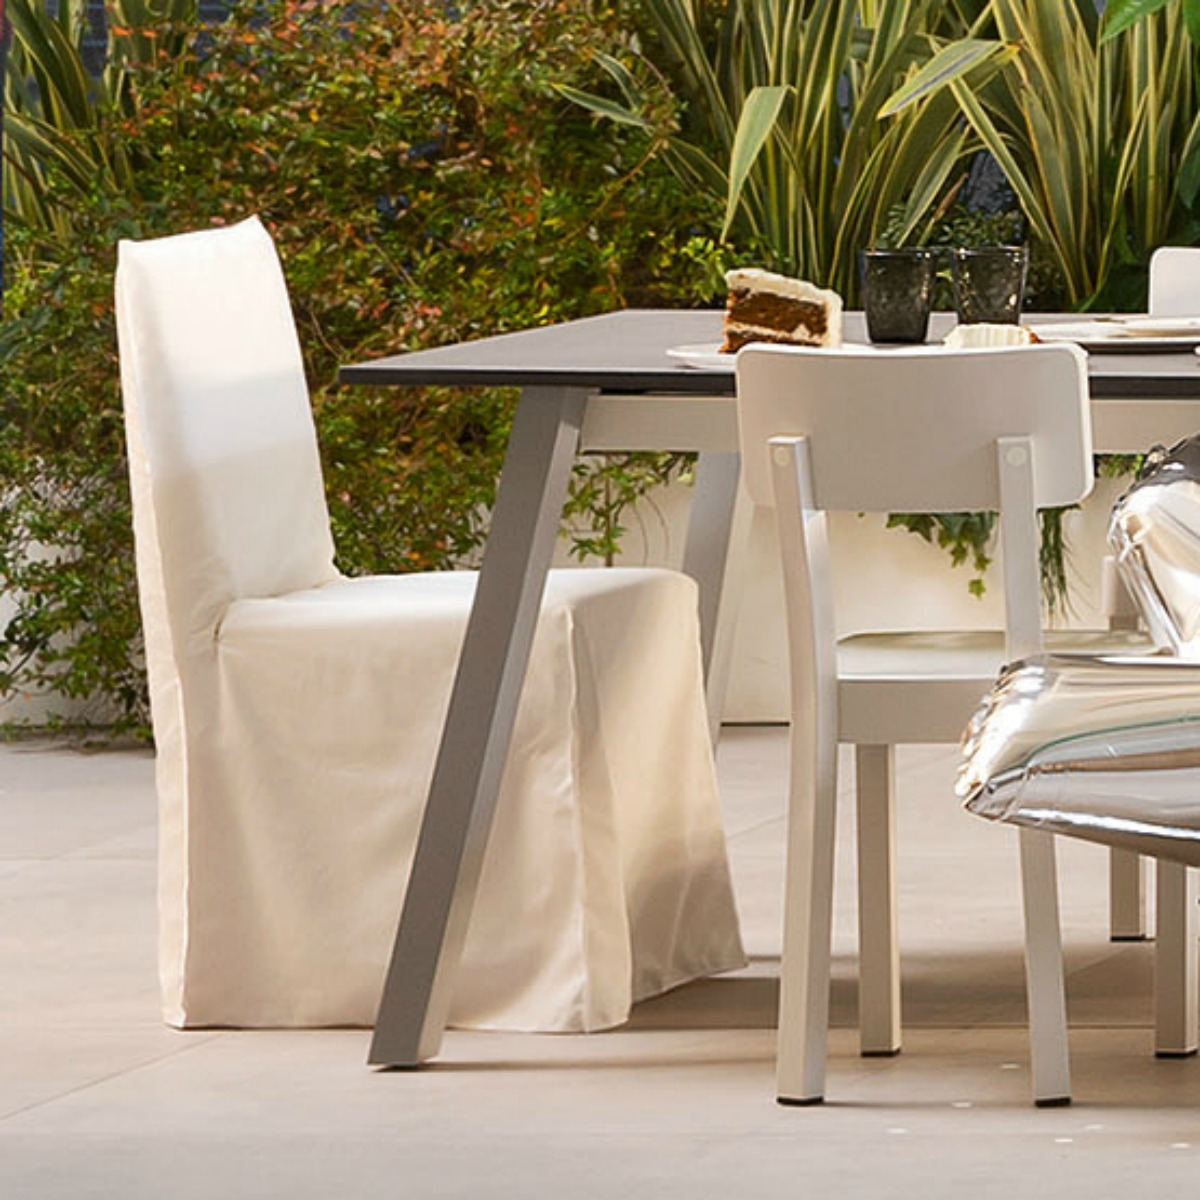 gervasoni gHOSTOUT 23 - Side chair for outdoor use, Removable cover in White Linen.